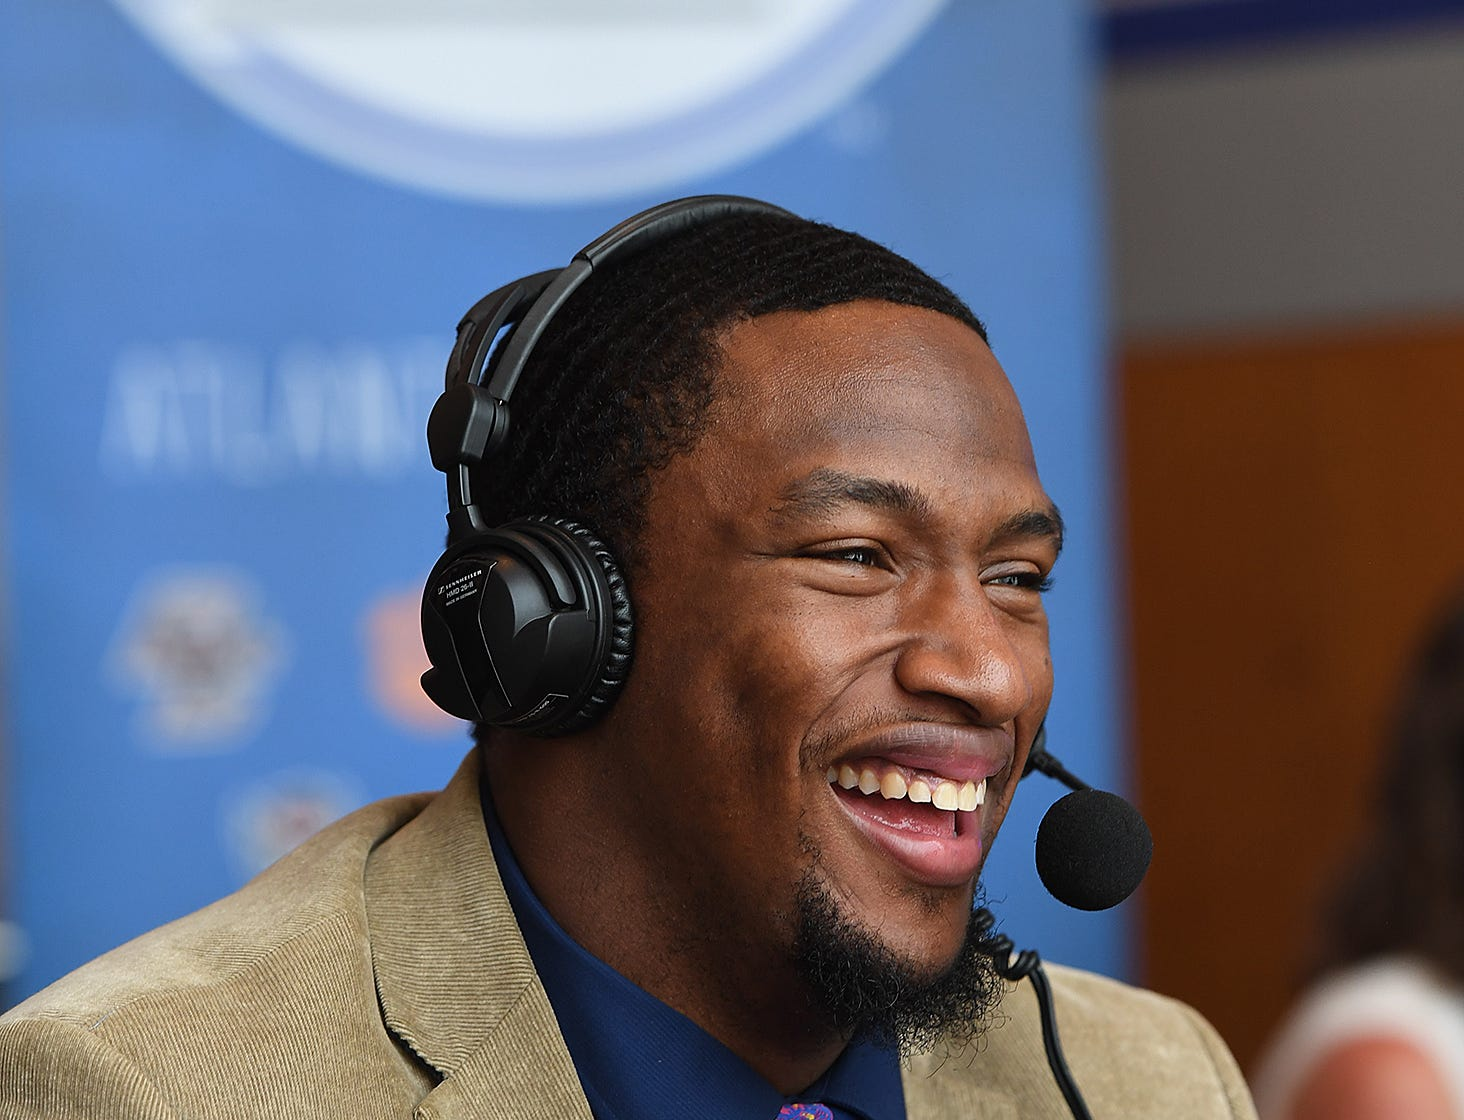 Clemson defensive lineman Clelin Ferrell is interviewed on radio row at the ACC Football Kickoff in Charlotte, N.C., Thursday, July 19, 2018.